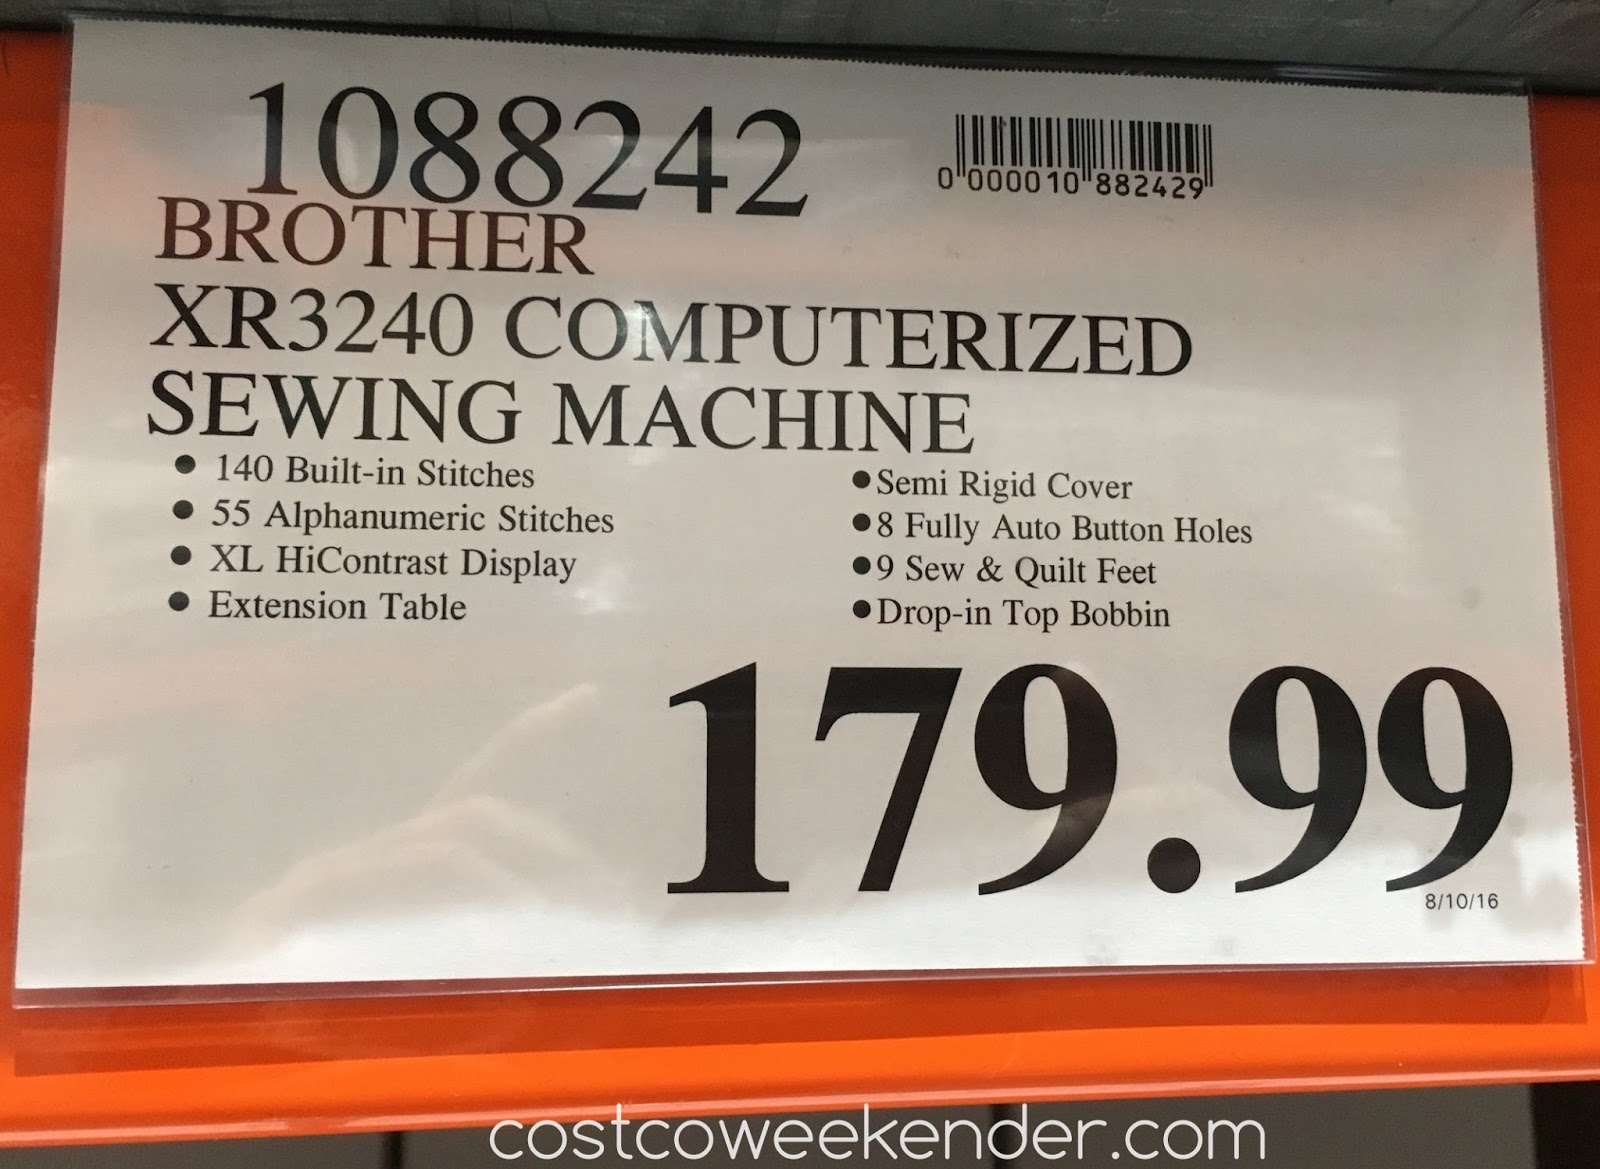 Brother Xr3240 Computerized Sewing Quilting Machine Costco Weekender